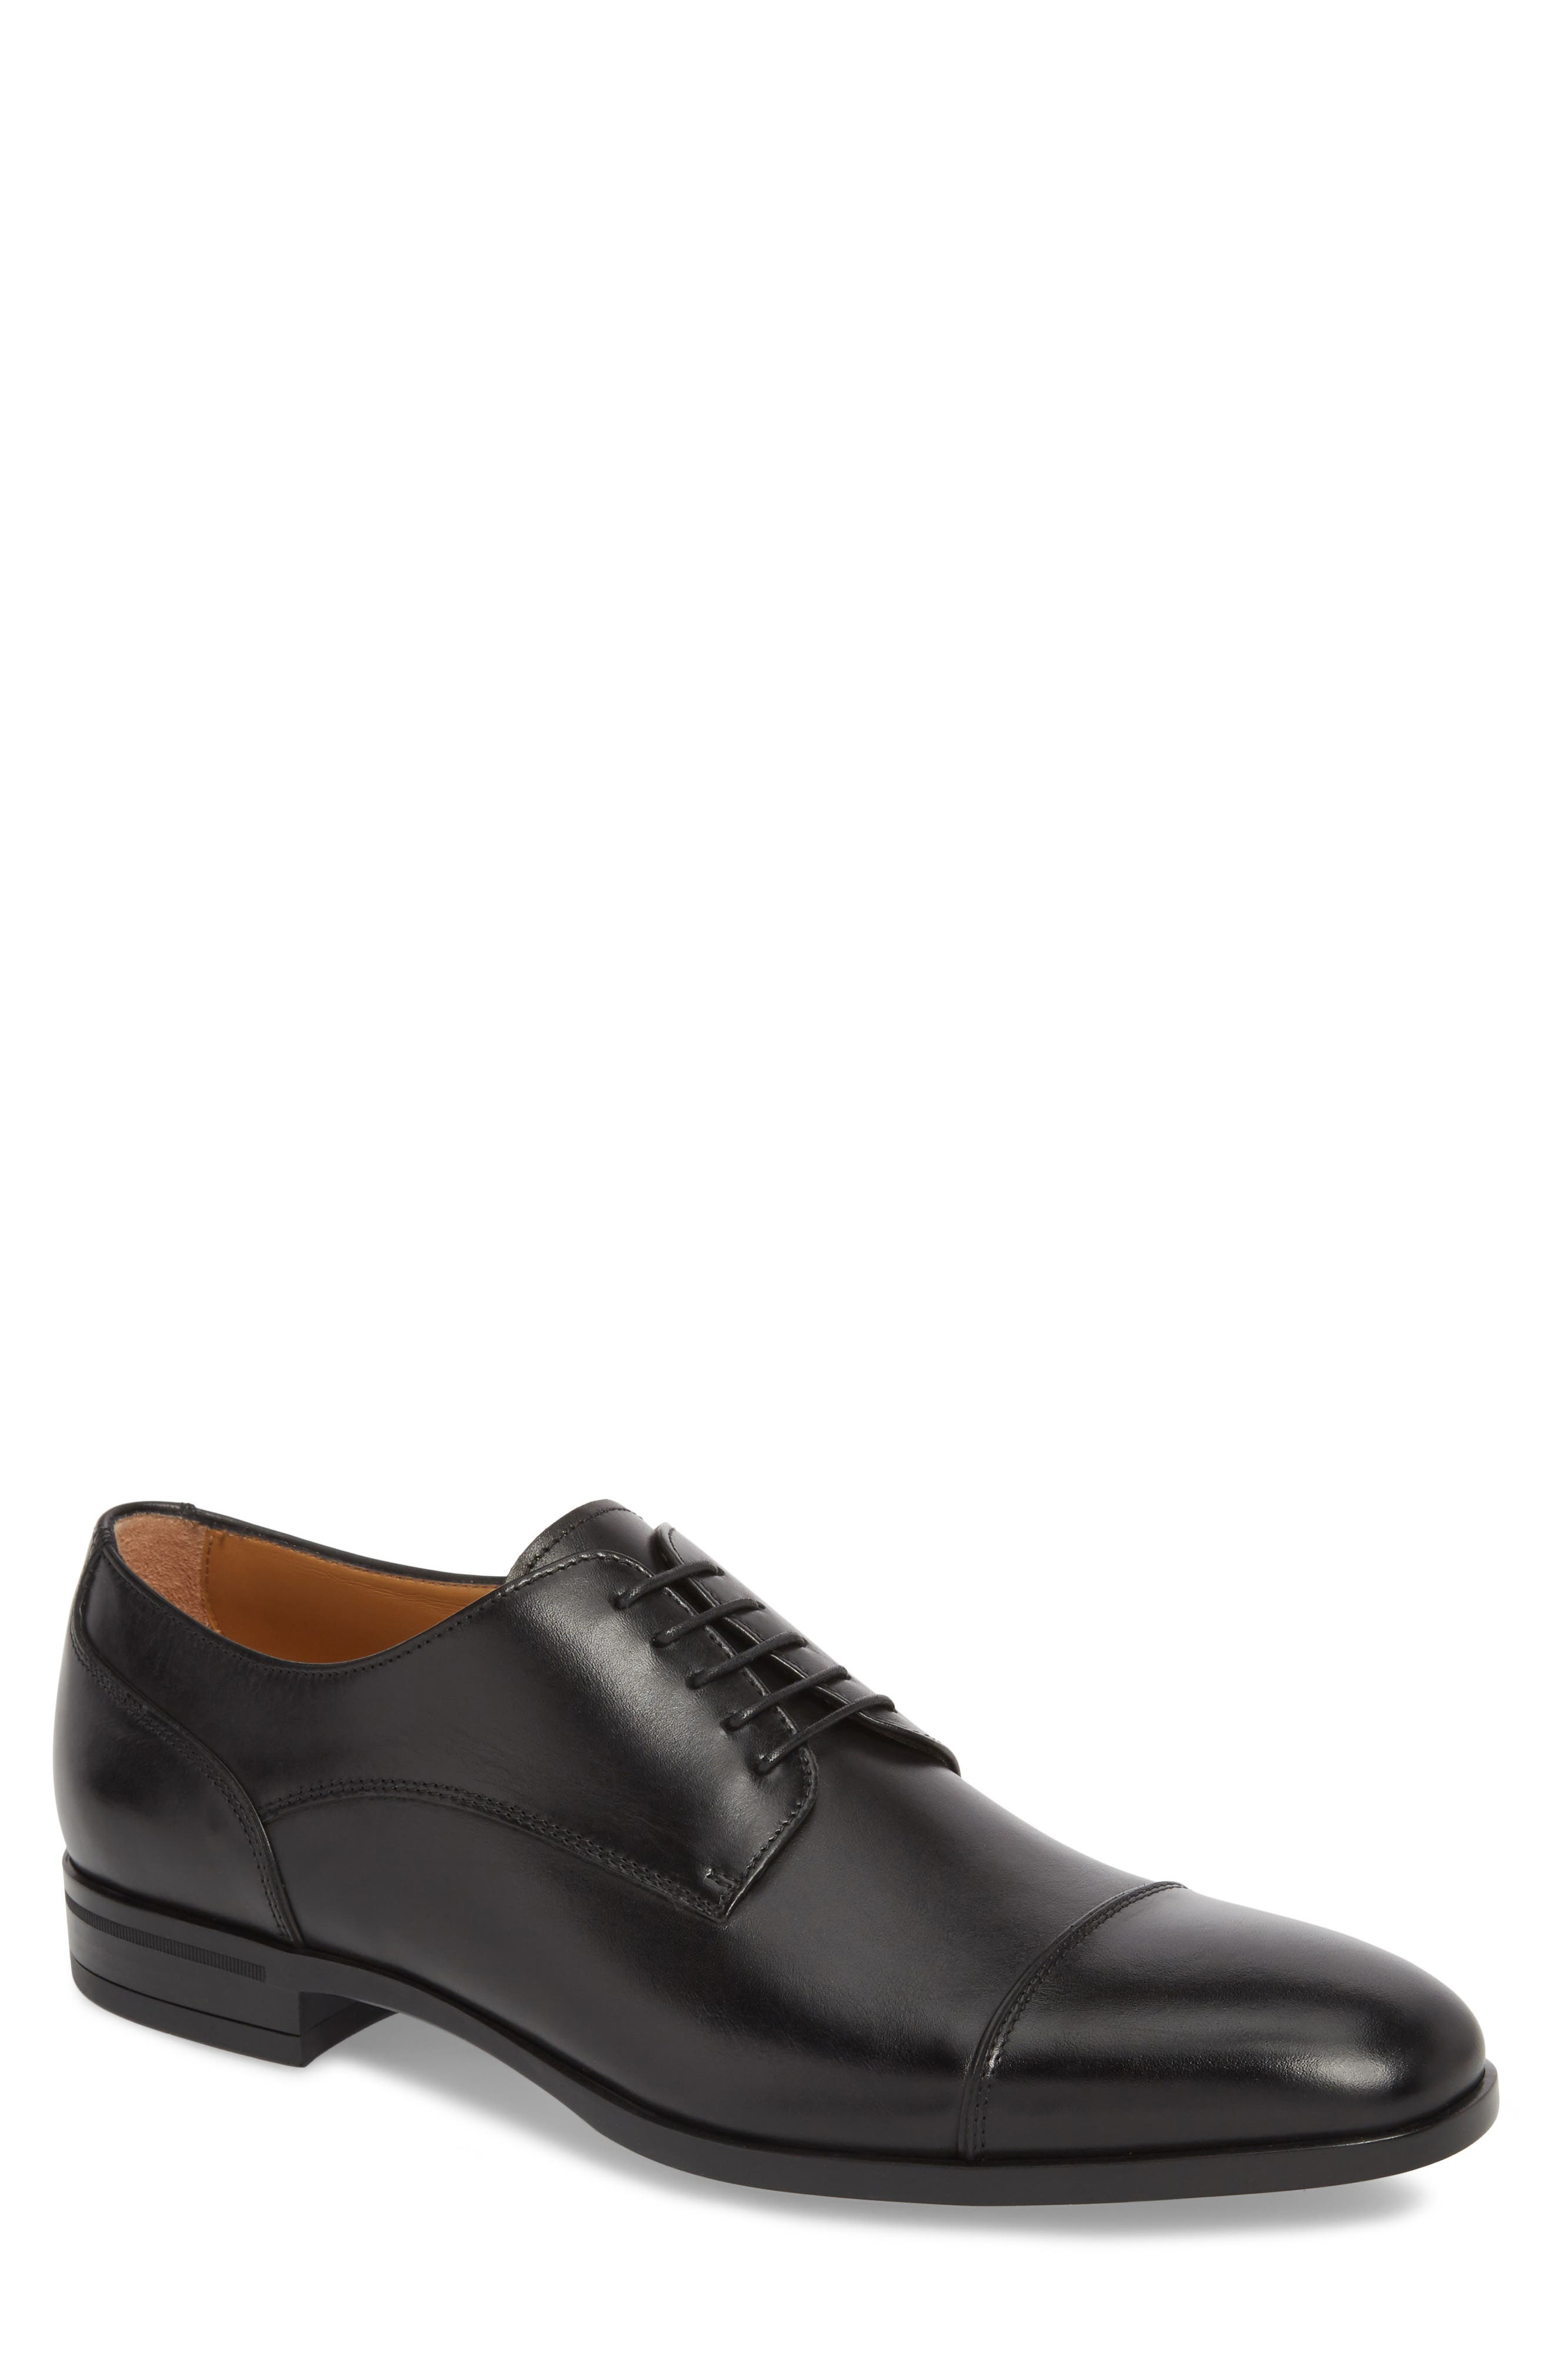 Hugo Boss Portland Cap Toe Derby,                             Main thumbnail 1, color,                             001